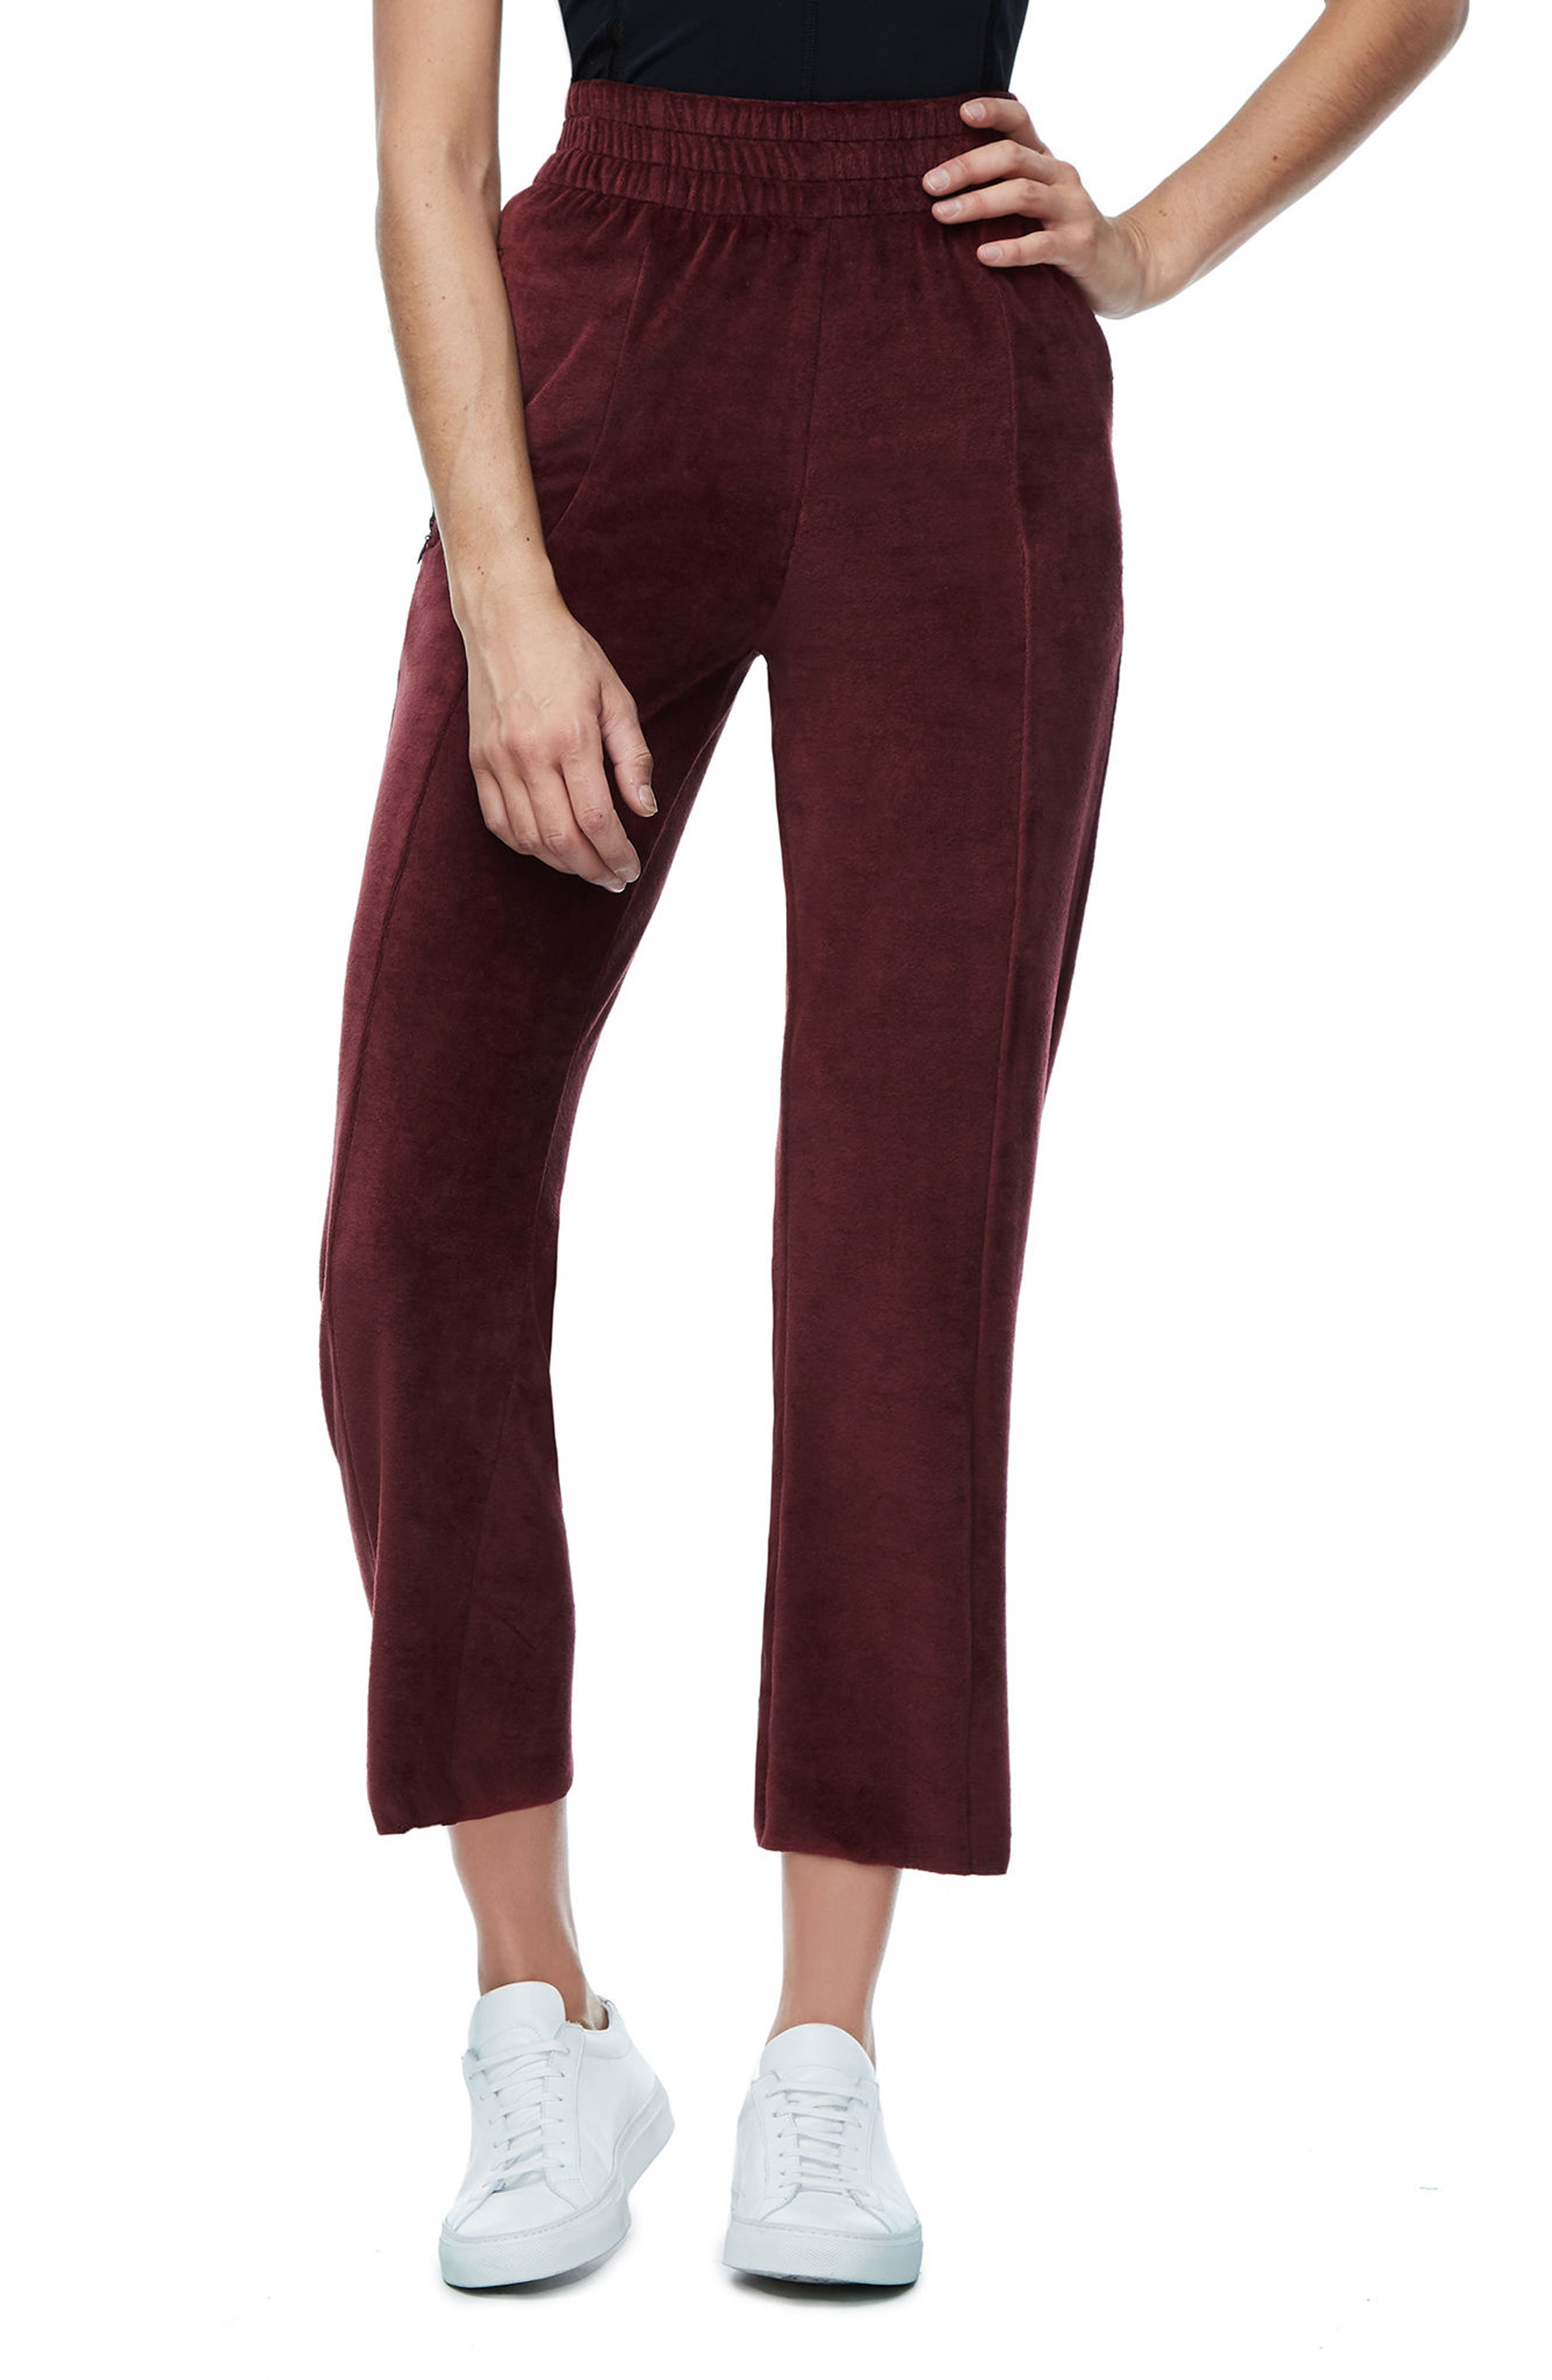 Main Image - Good American Good Sweats The High Waist Sweatpants (Extended Sizes)